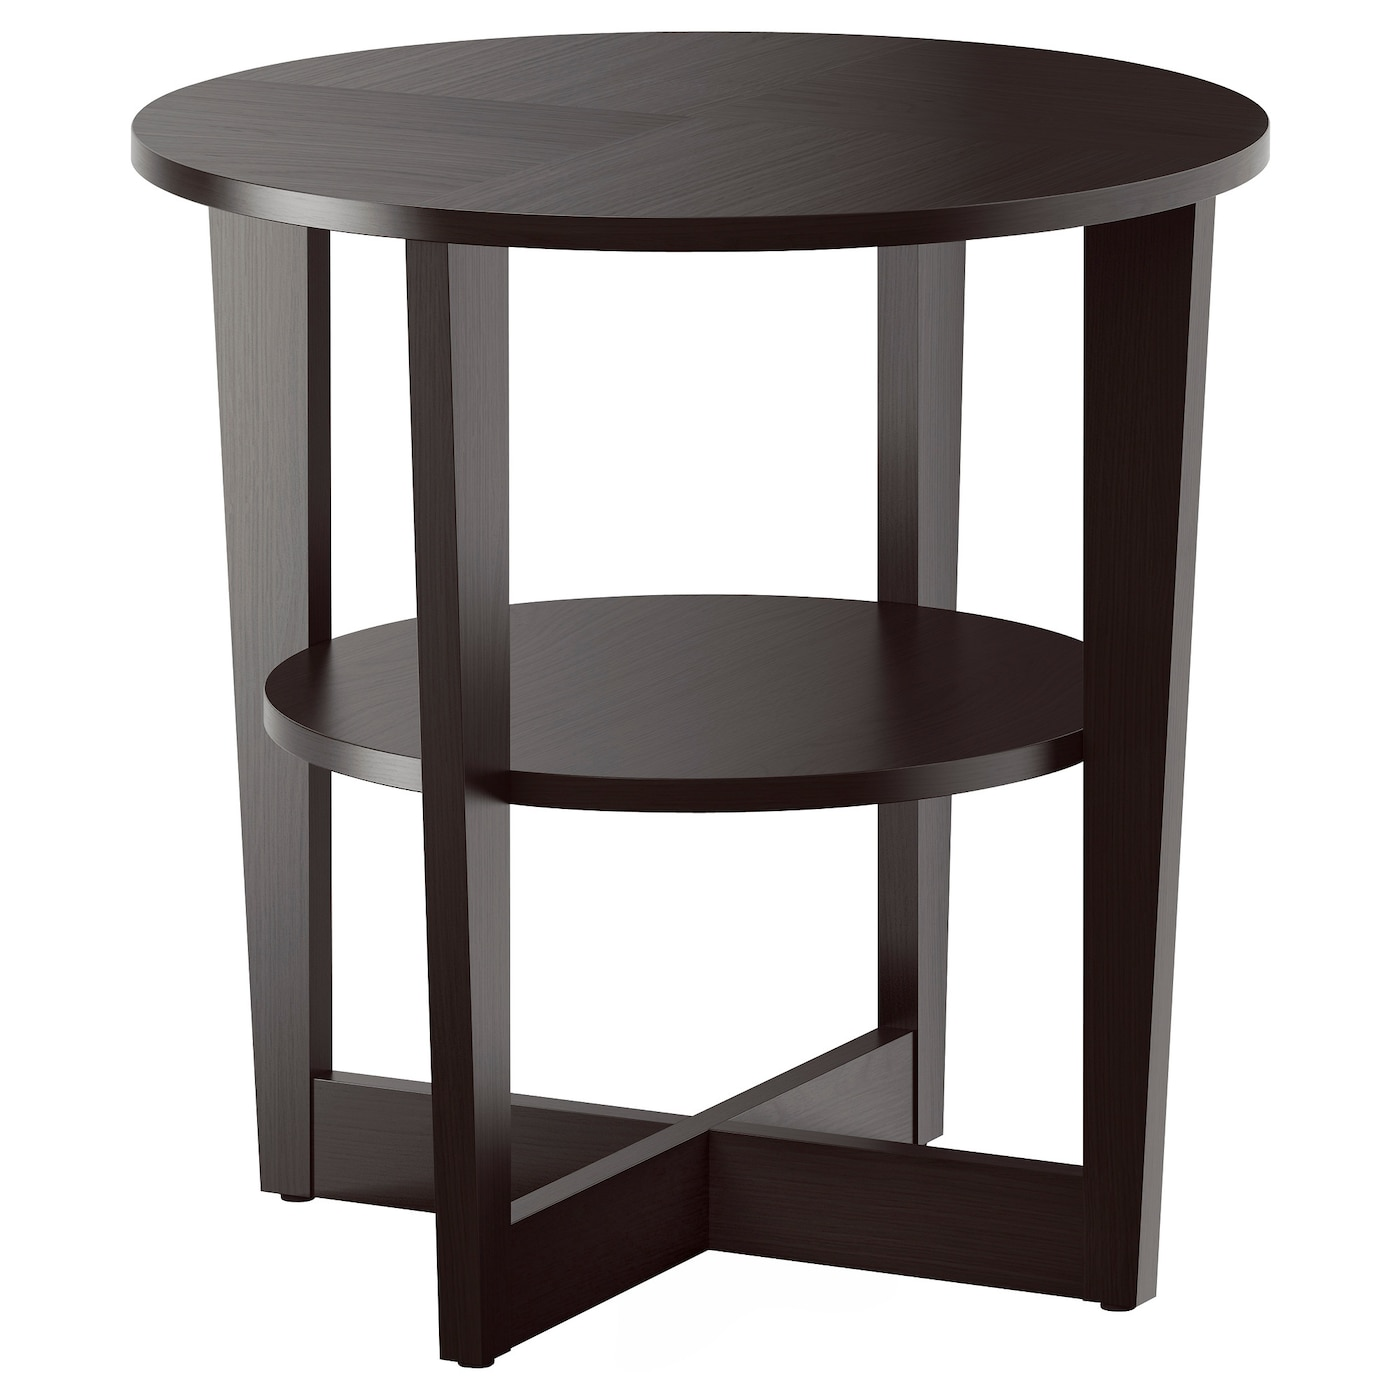 VEJMON Side table Black brown 60 cm IKEA